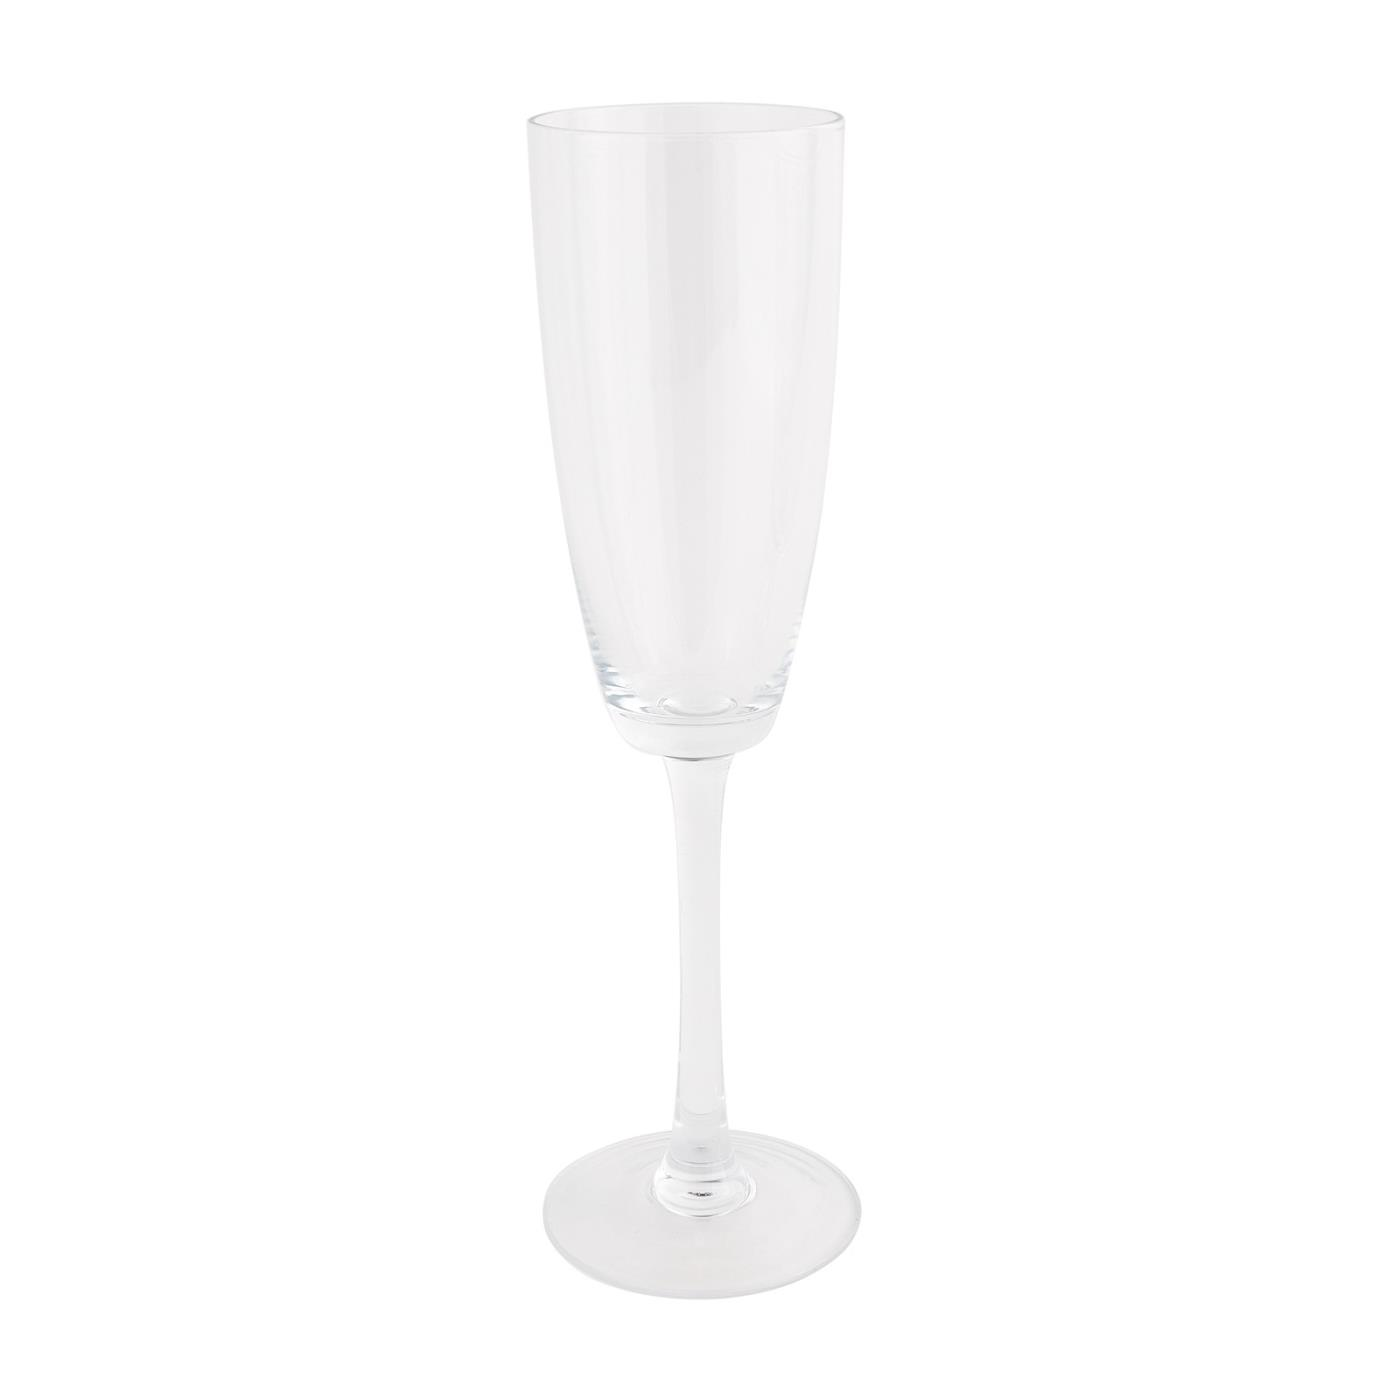 Elan Collection -  Champagne Flute 7 oz